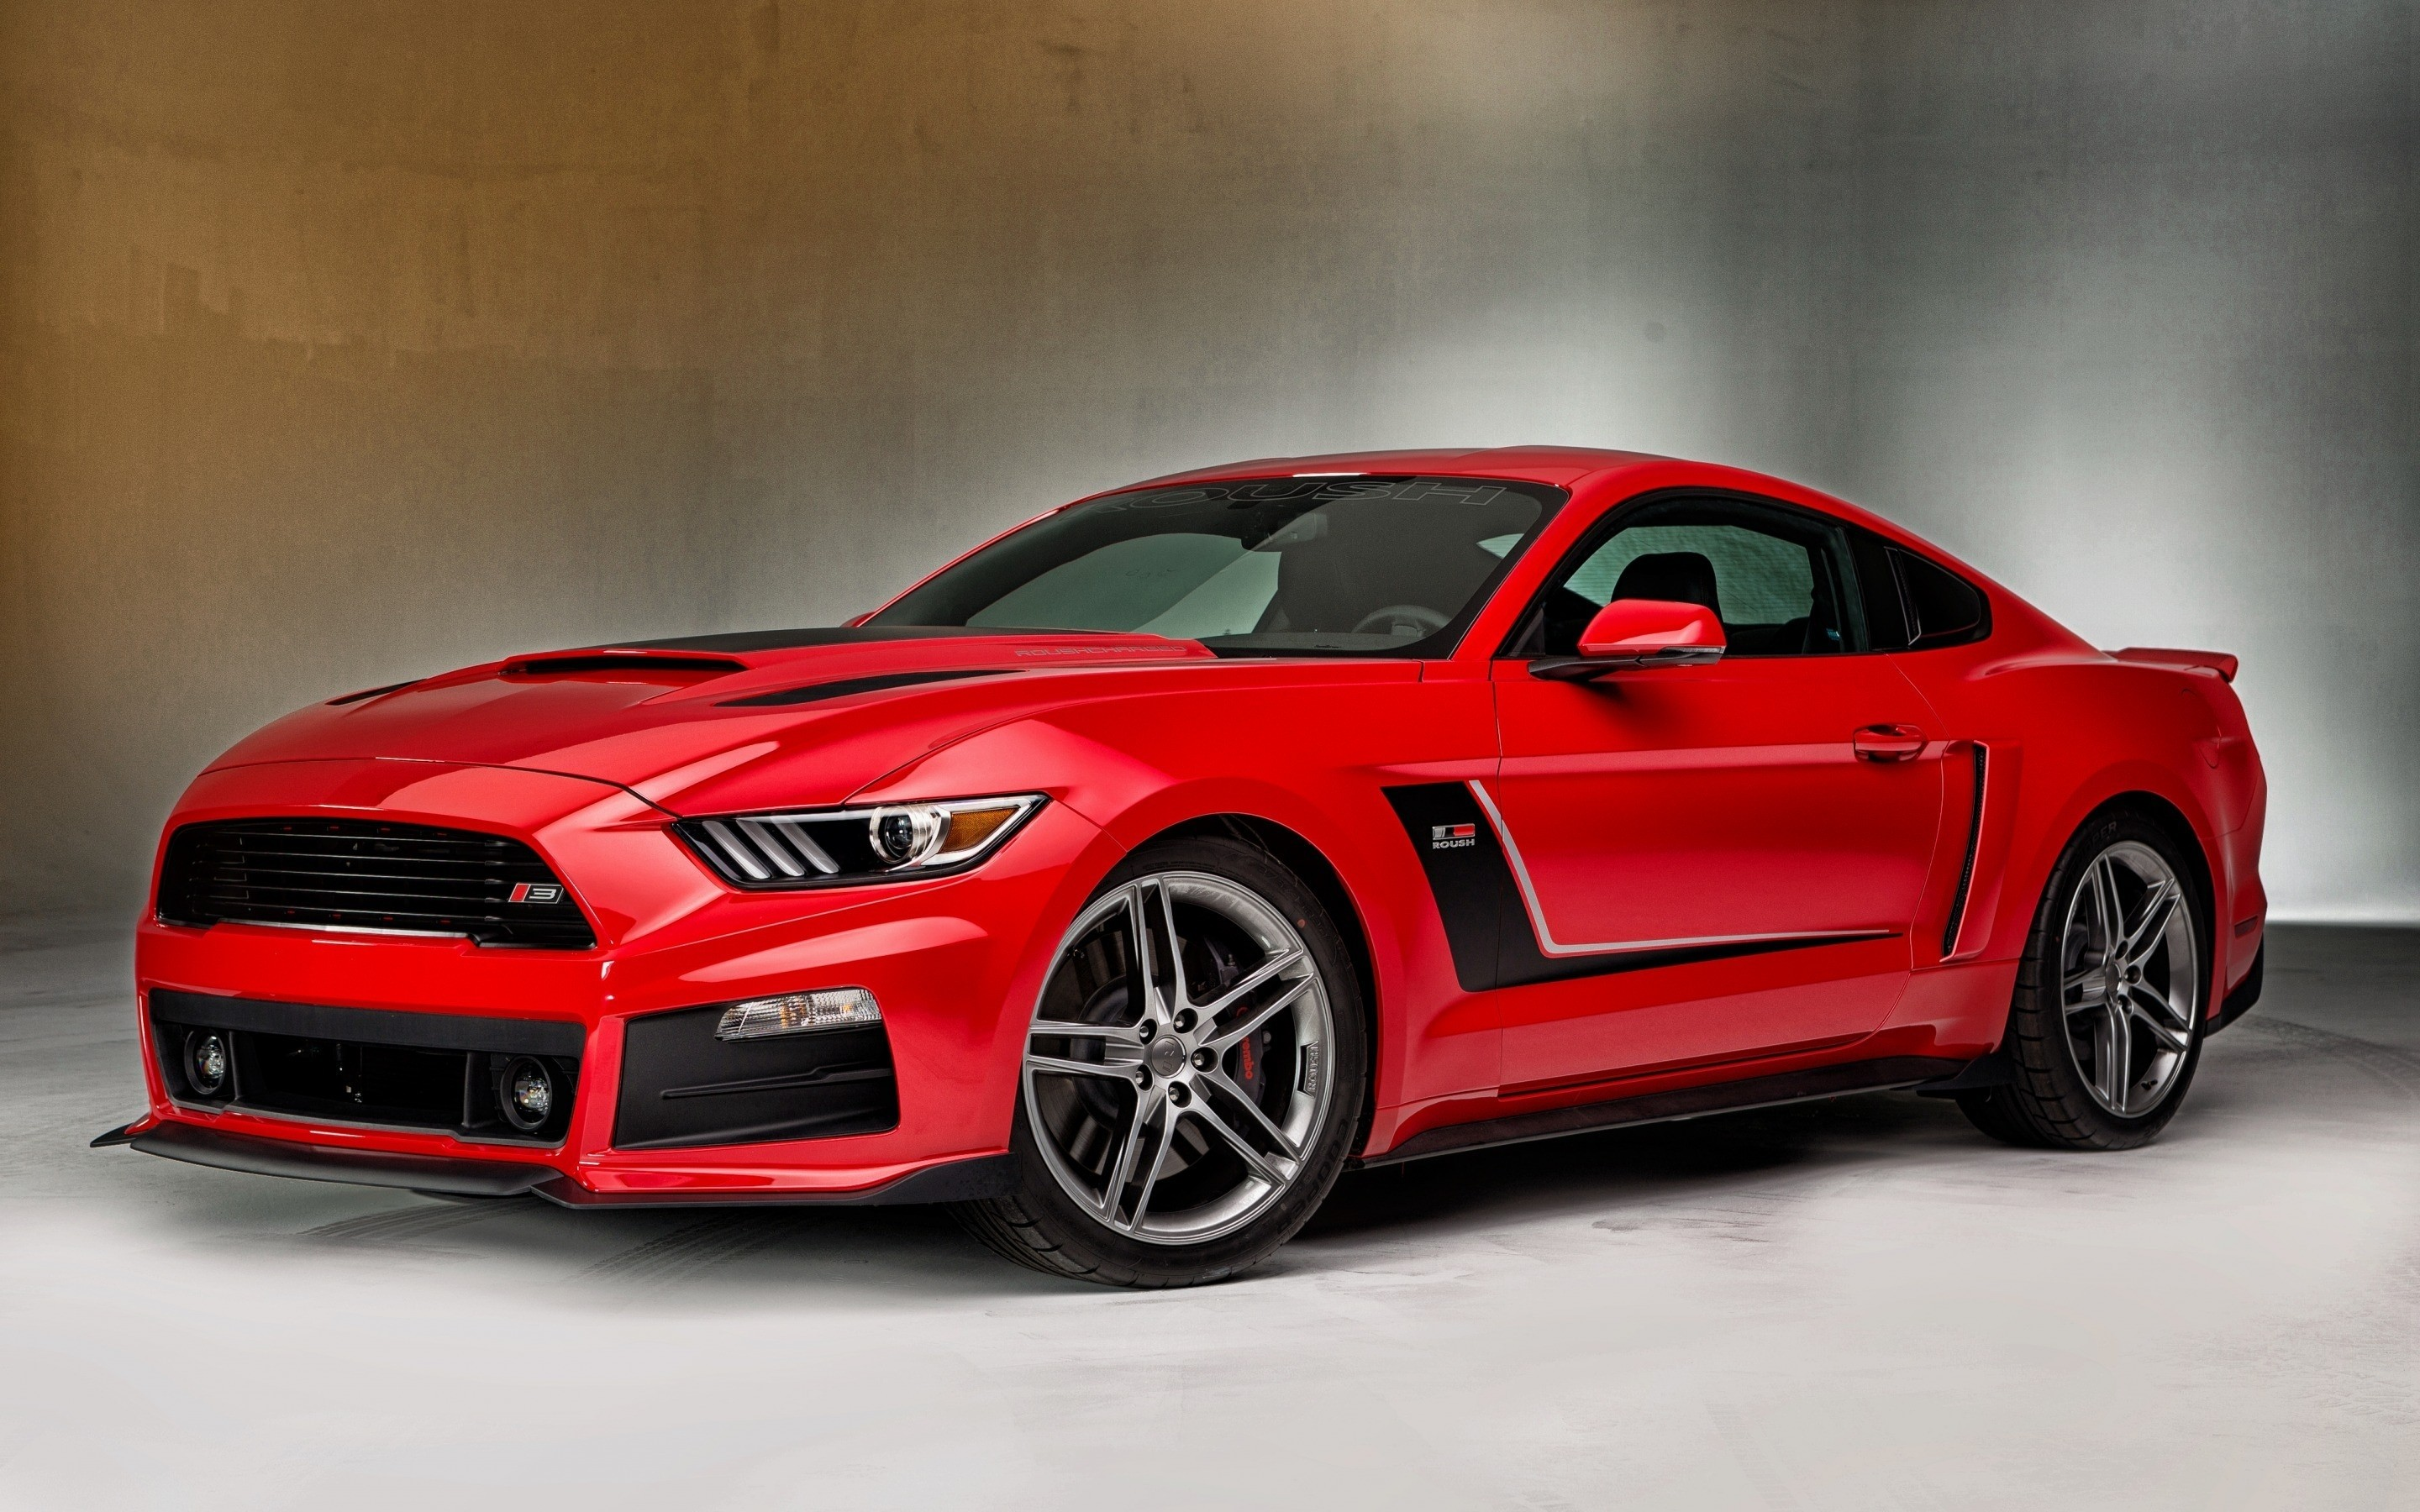 … wallpapers; gourgeous red ford mustang 2880 x 1800 retina display  wallpaper …